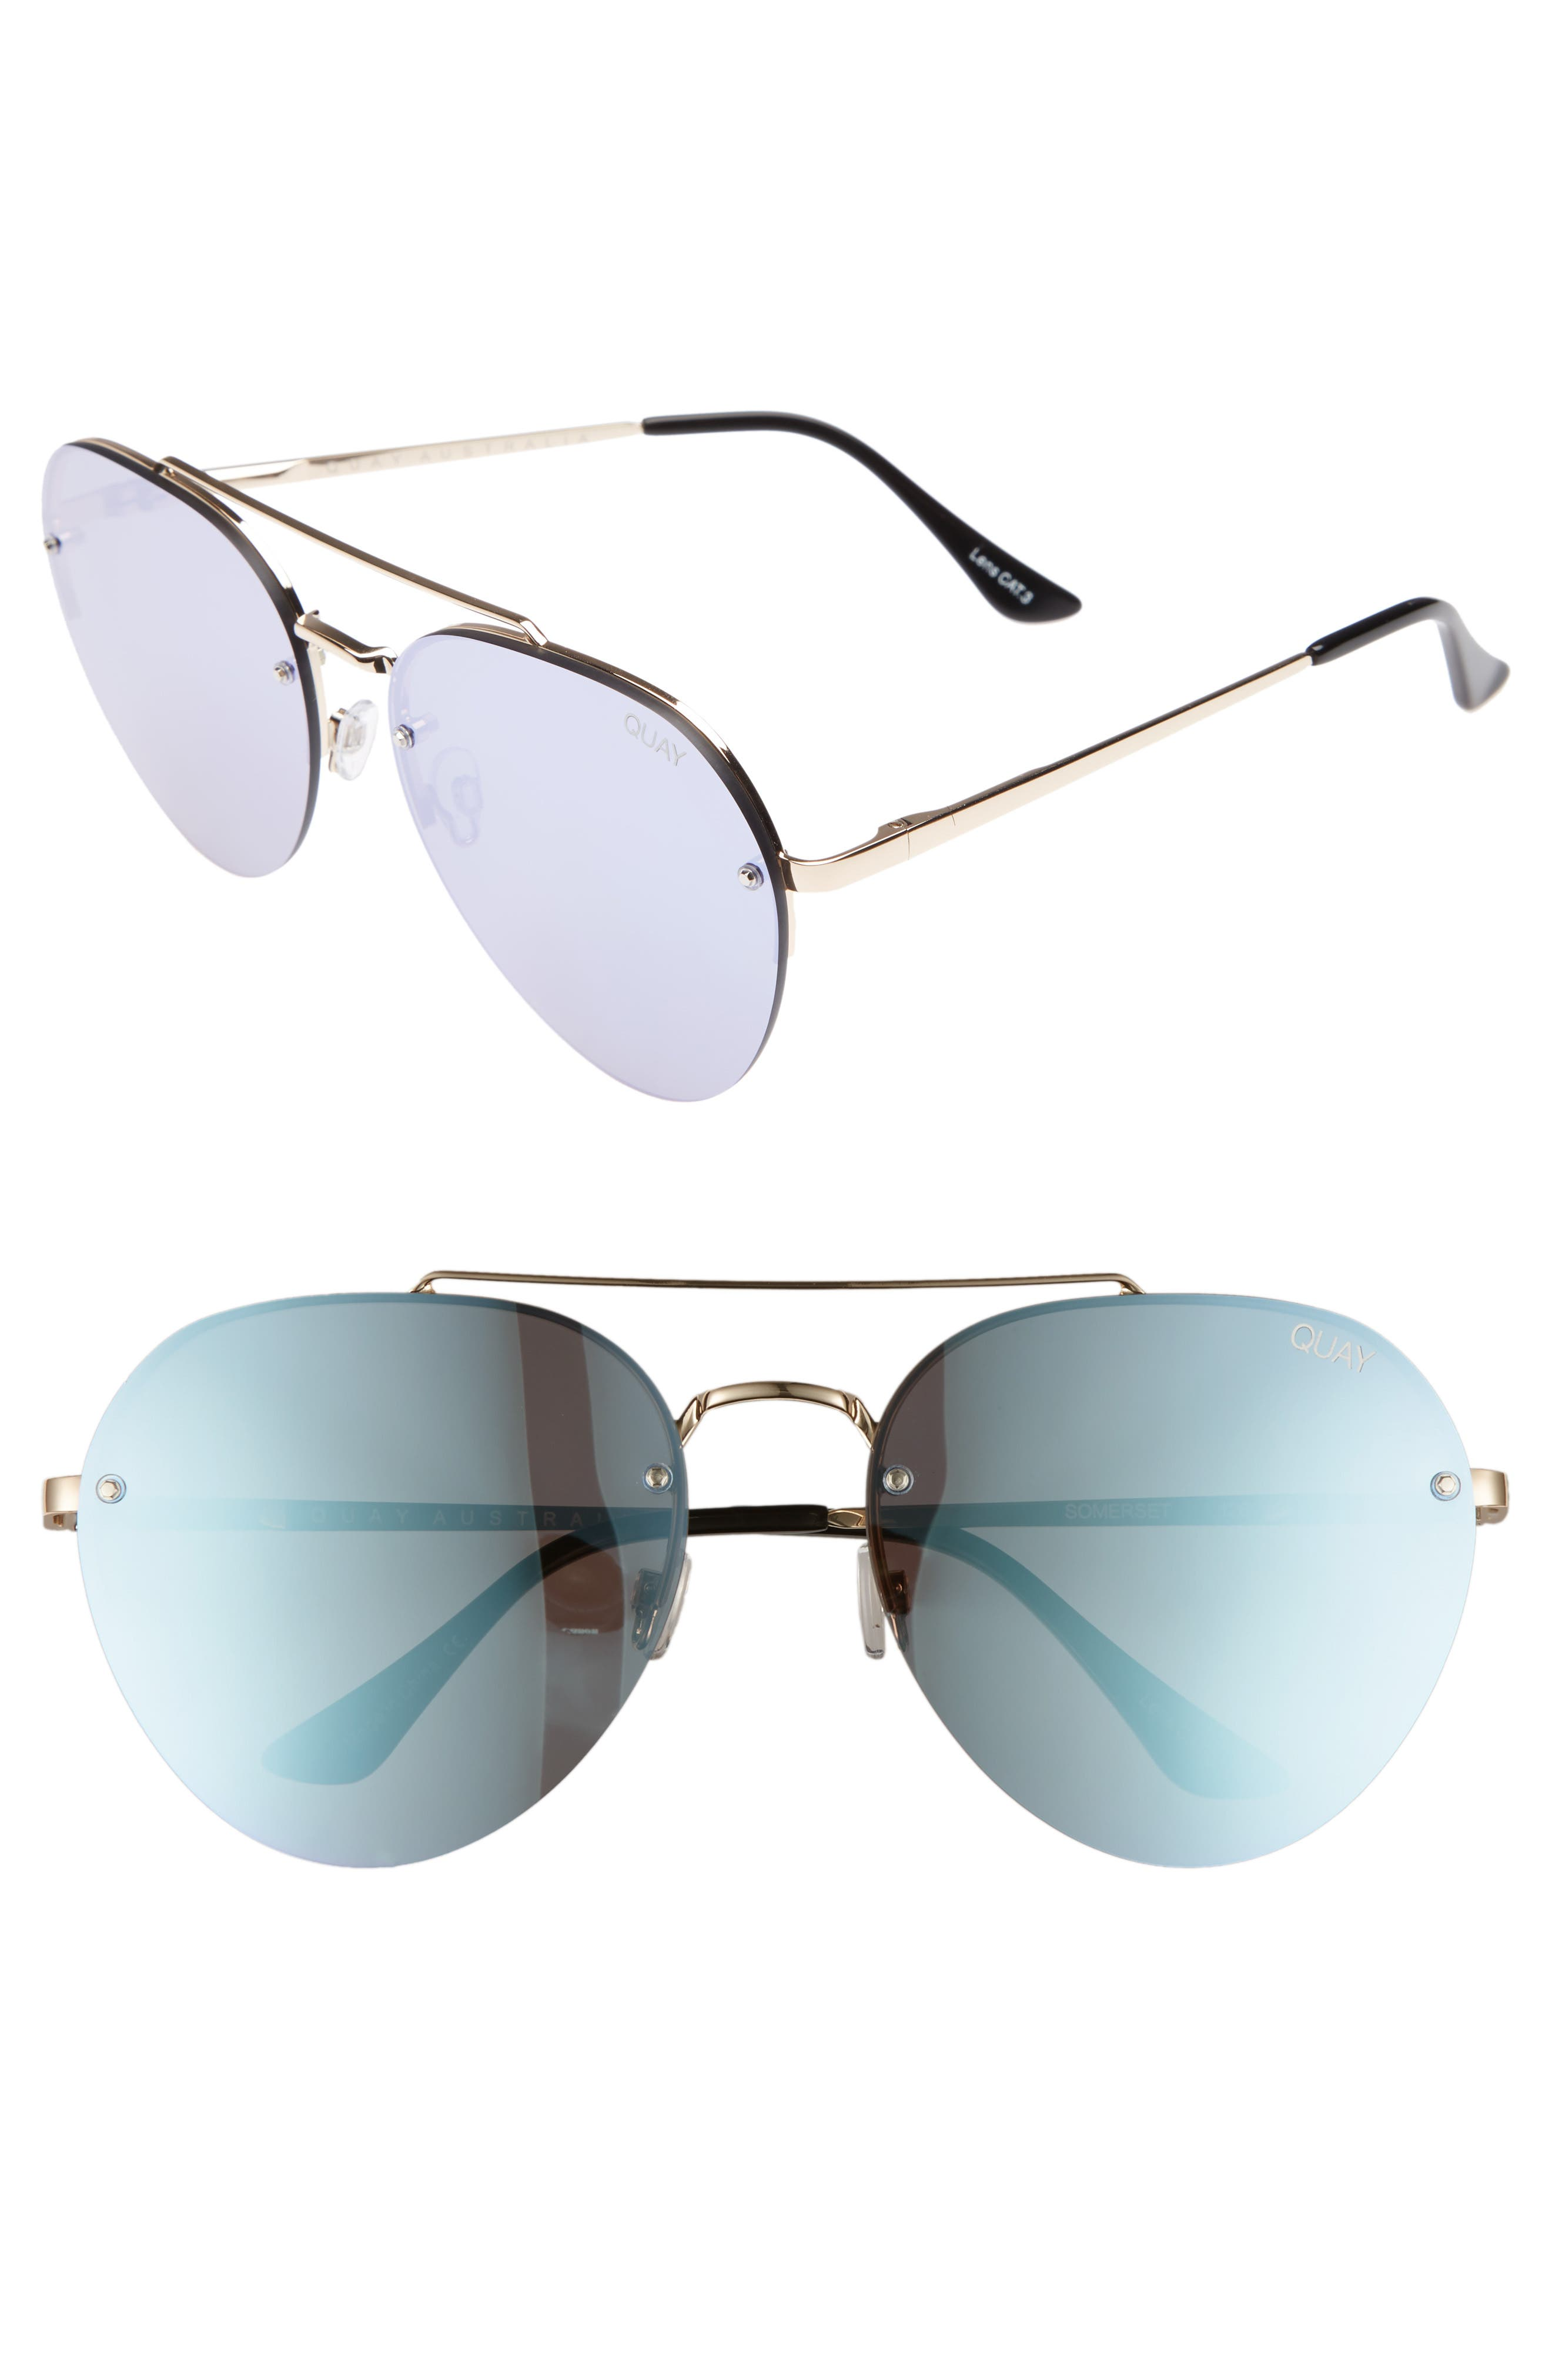 Quay Australia Somerset 65mm Aviator Sunglasses